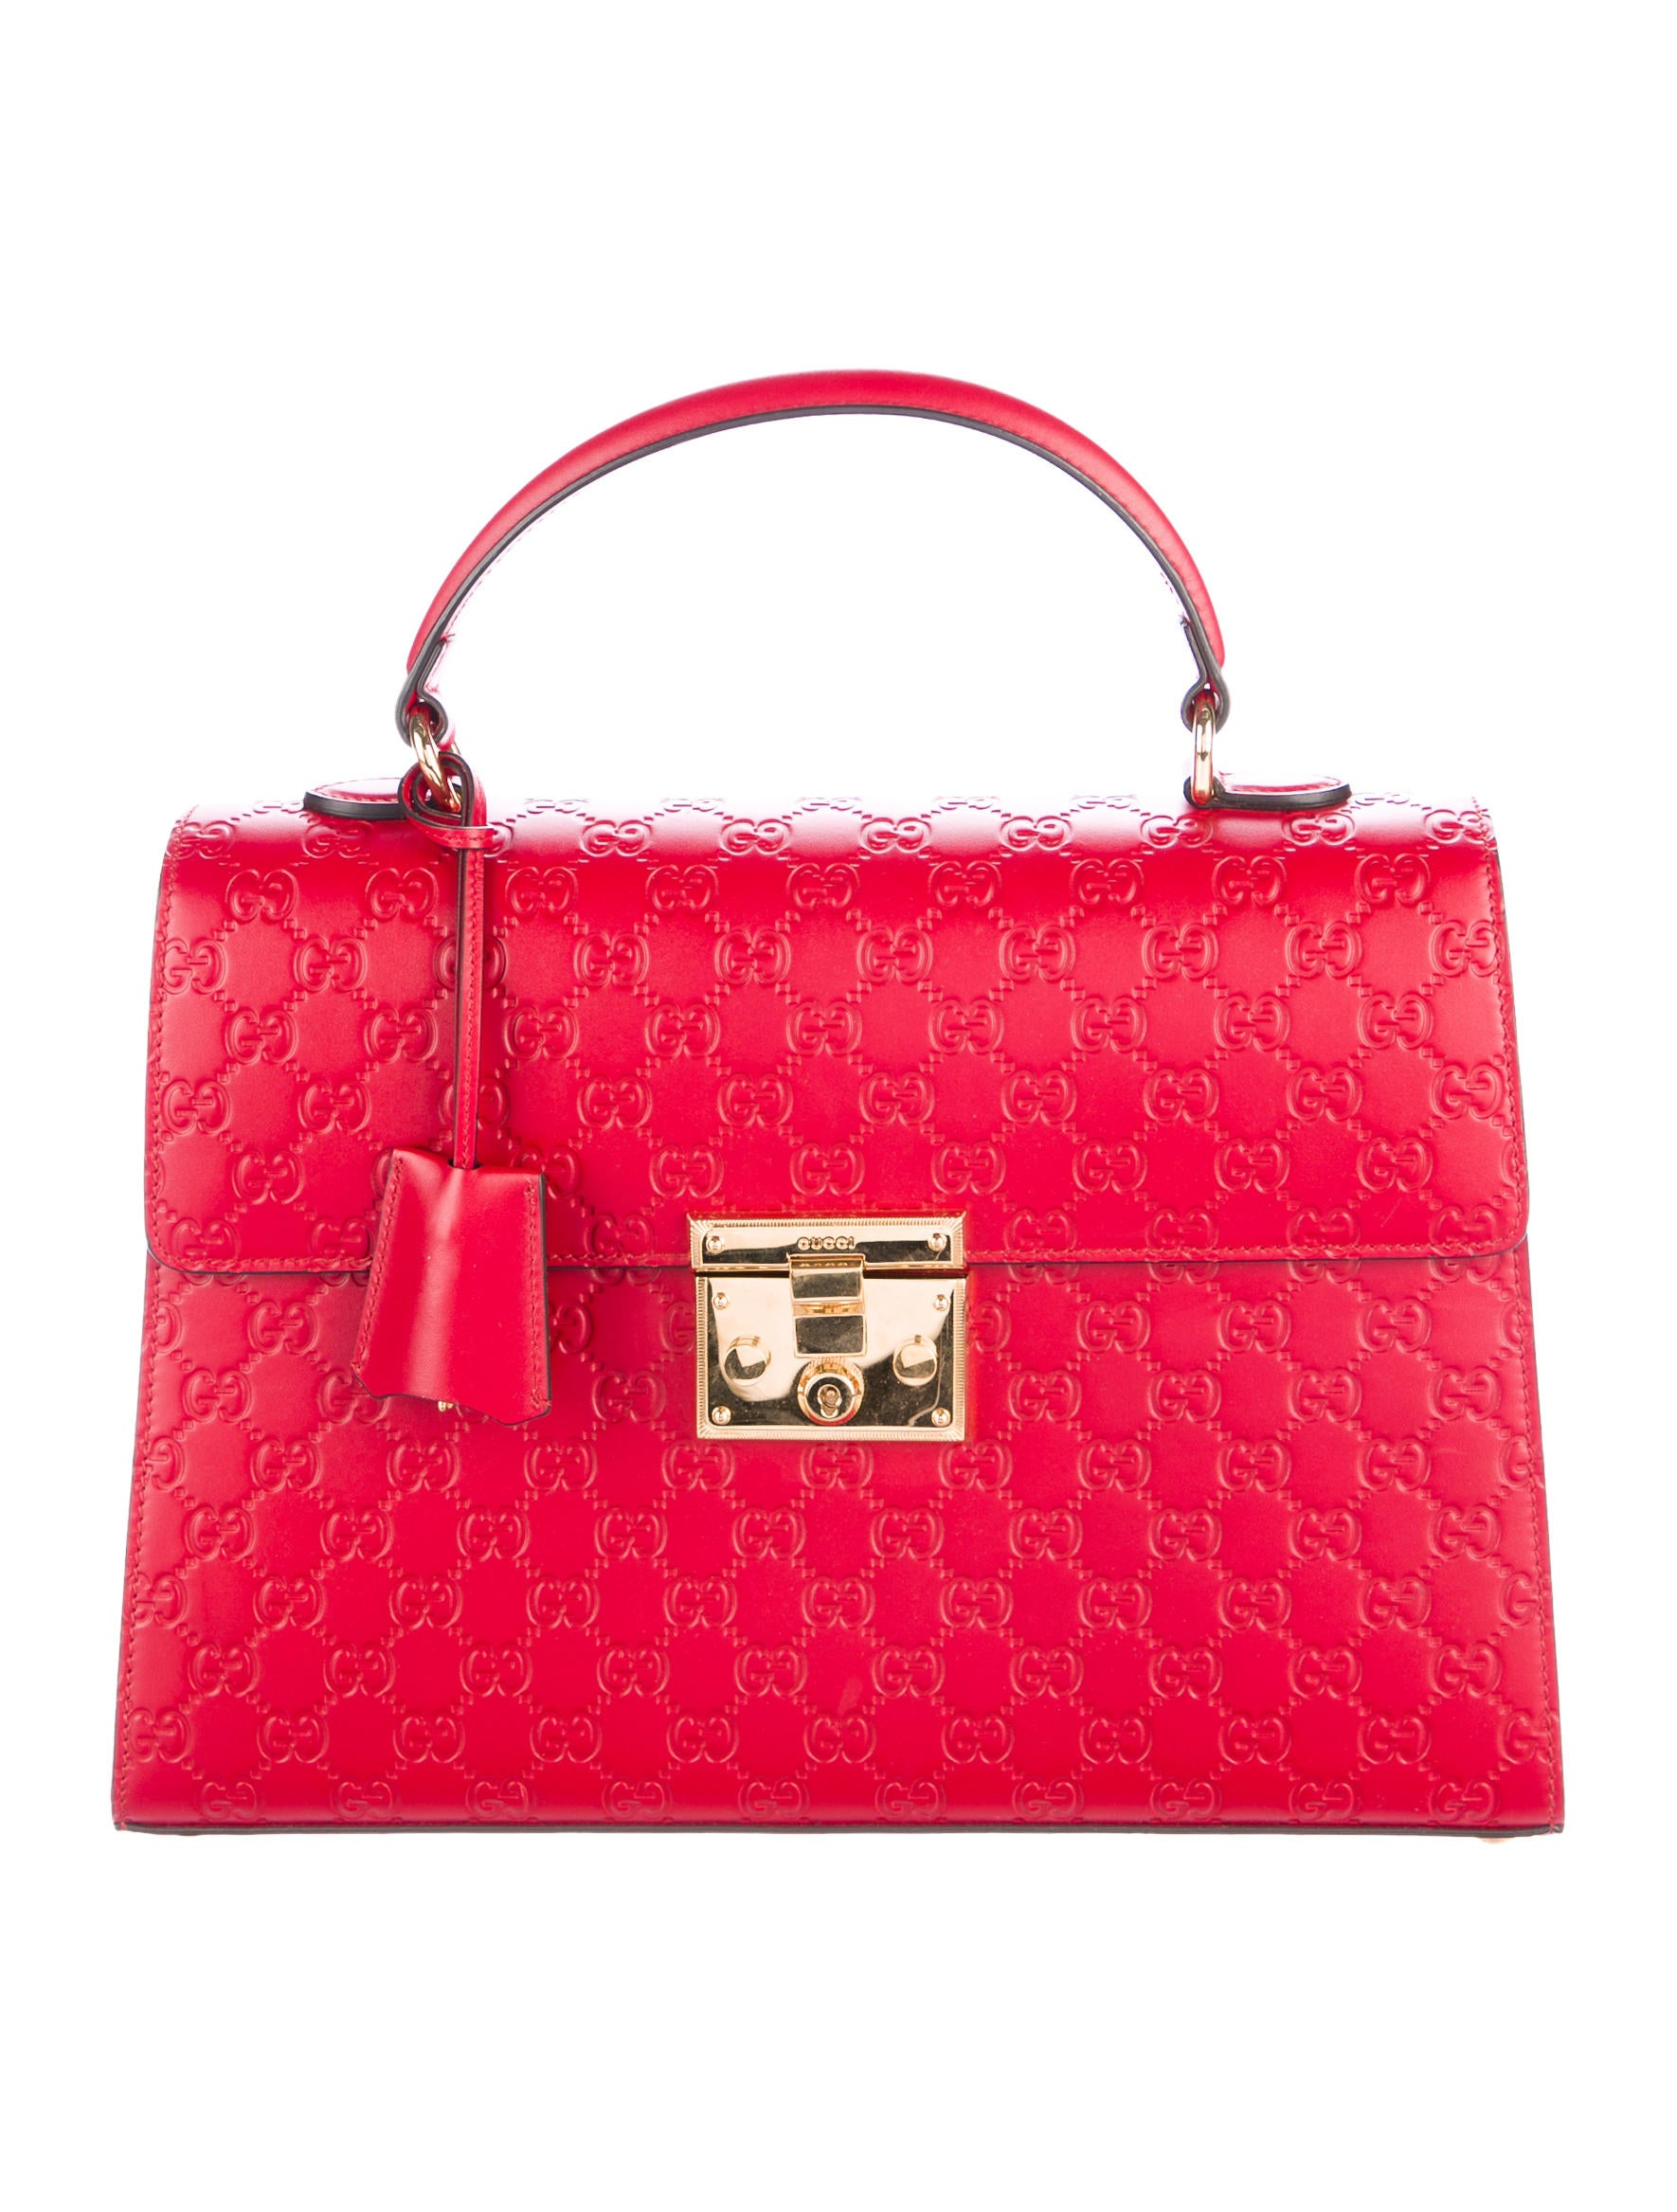 3776b4a37bc1 Gucci Medium Padlock Signature Top Handle Bag - Handbags - GUC163651 | The  RealReal